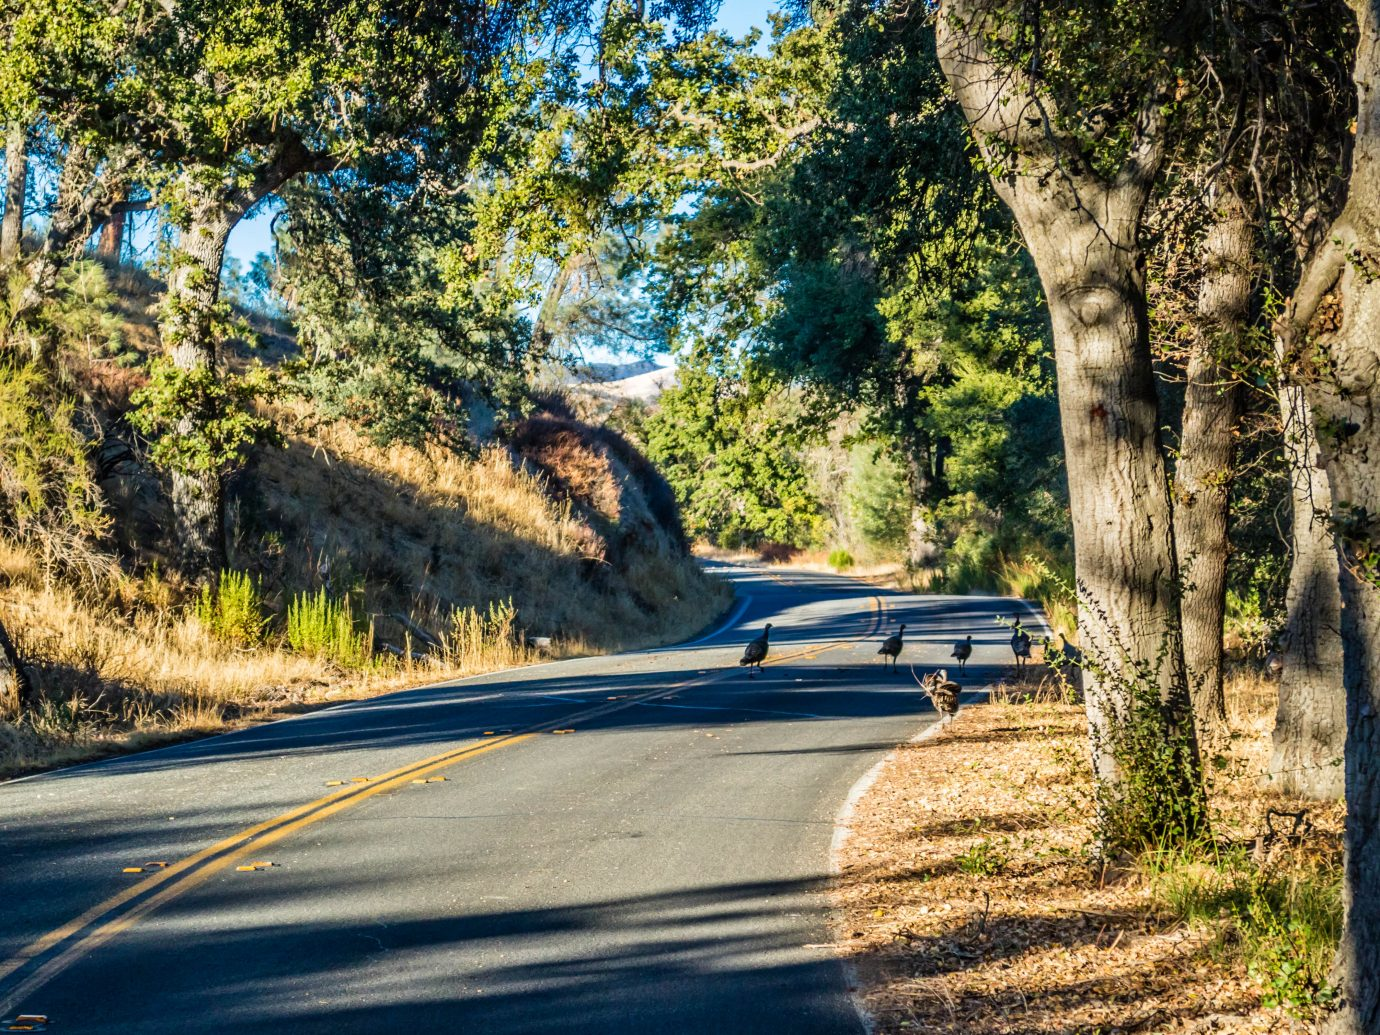 Family of four wild turkeys are roaming around the road of Pinnacles National Park, California